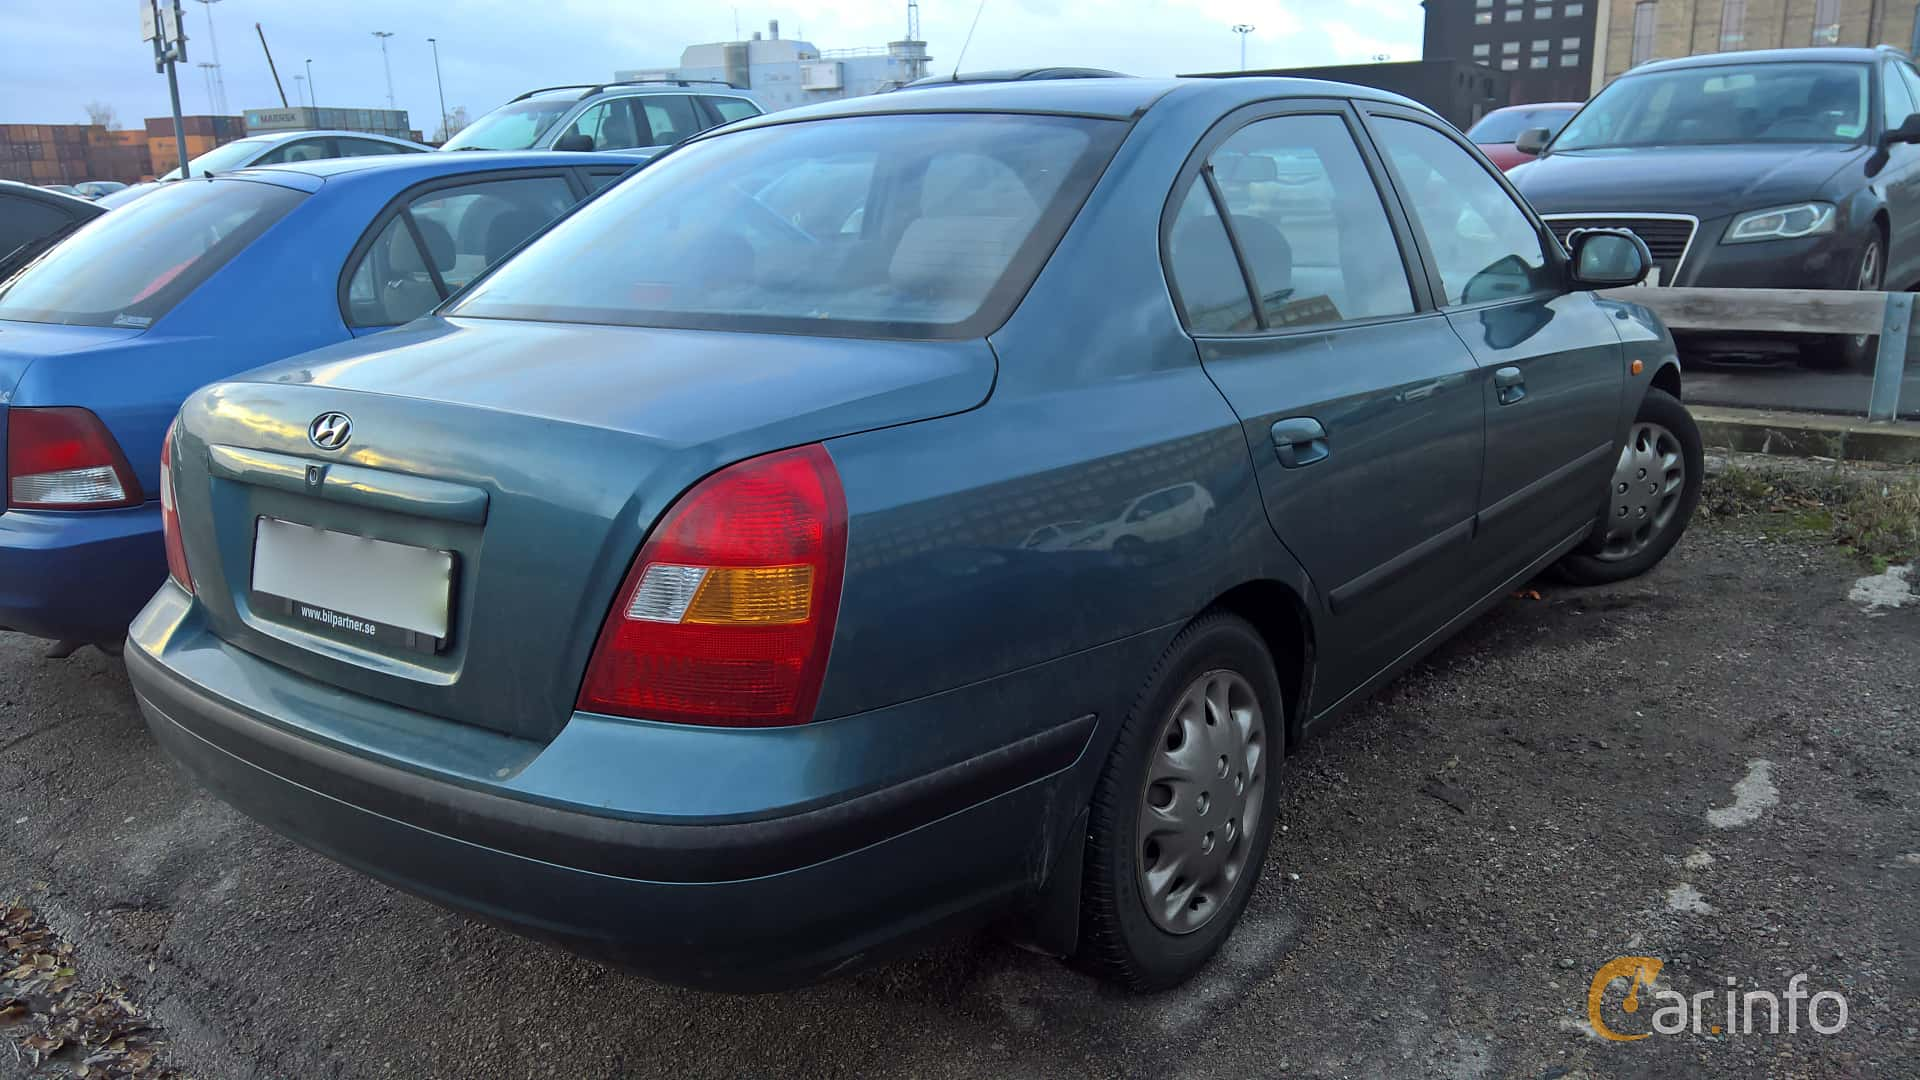 Hyundai Elantra Sedan 1.6 Manual, 107hp, 2002